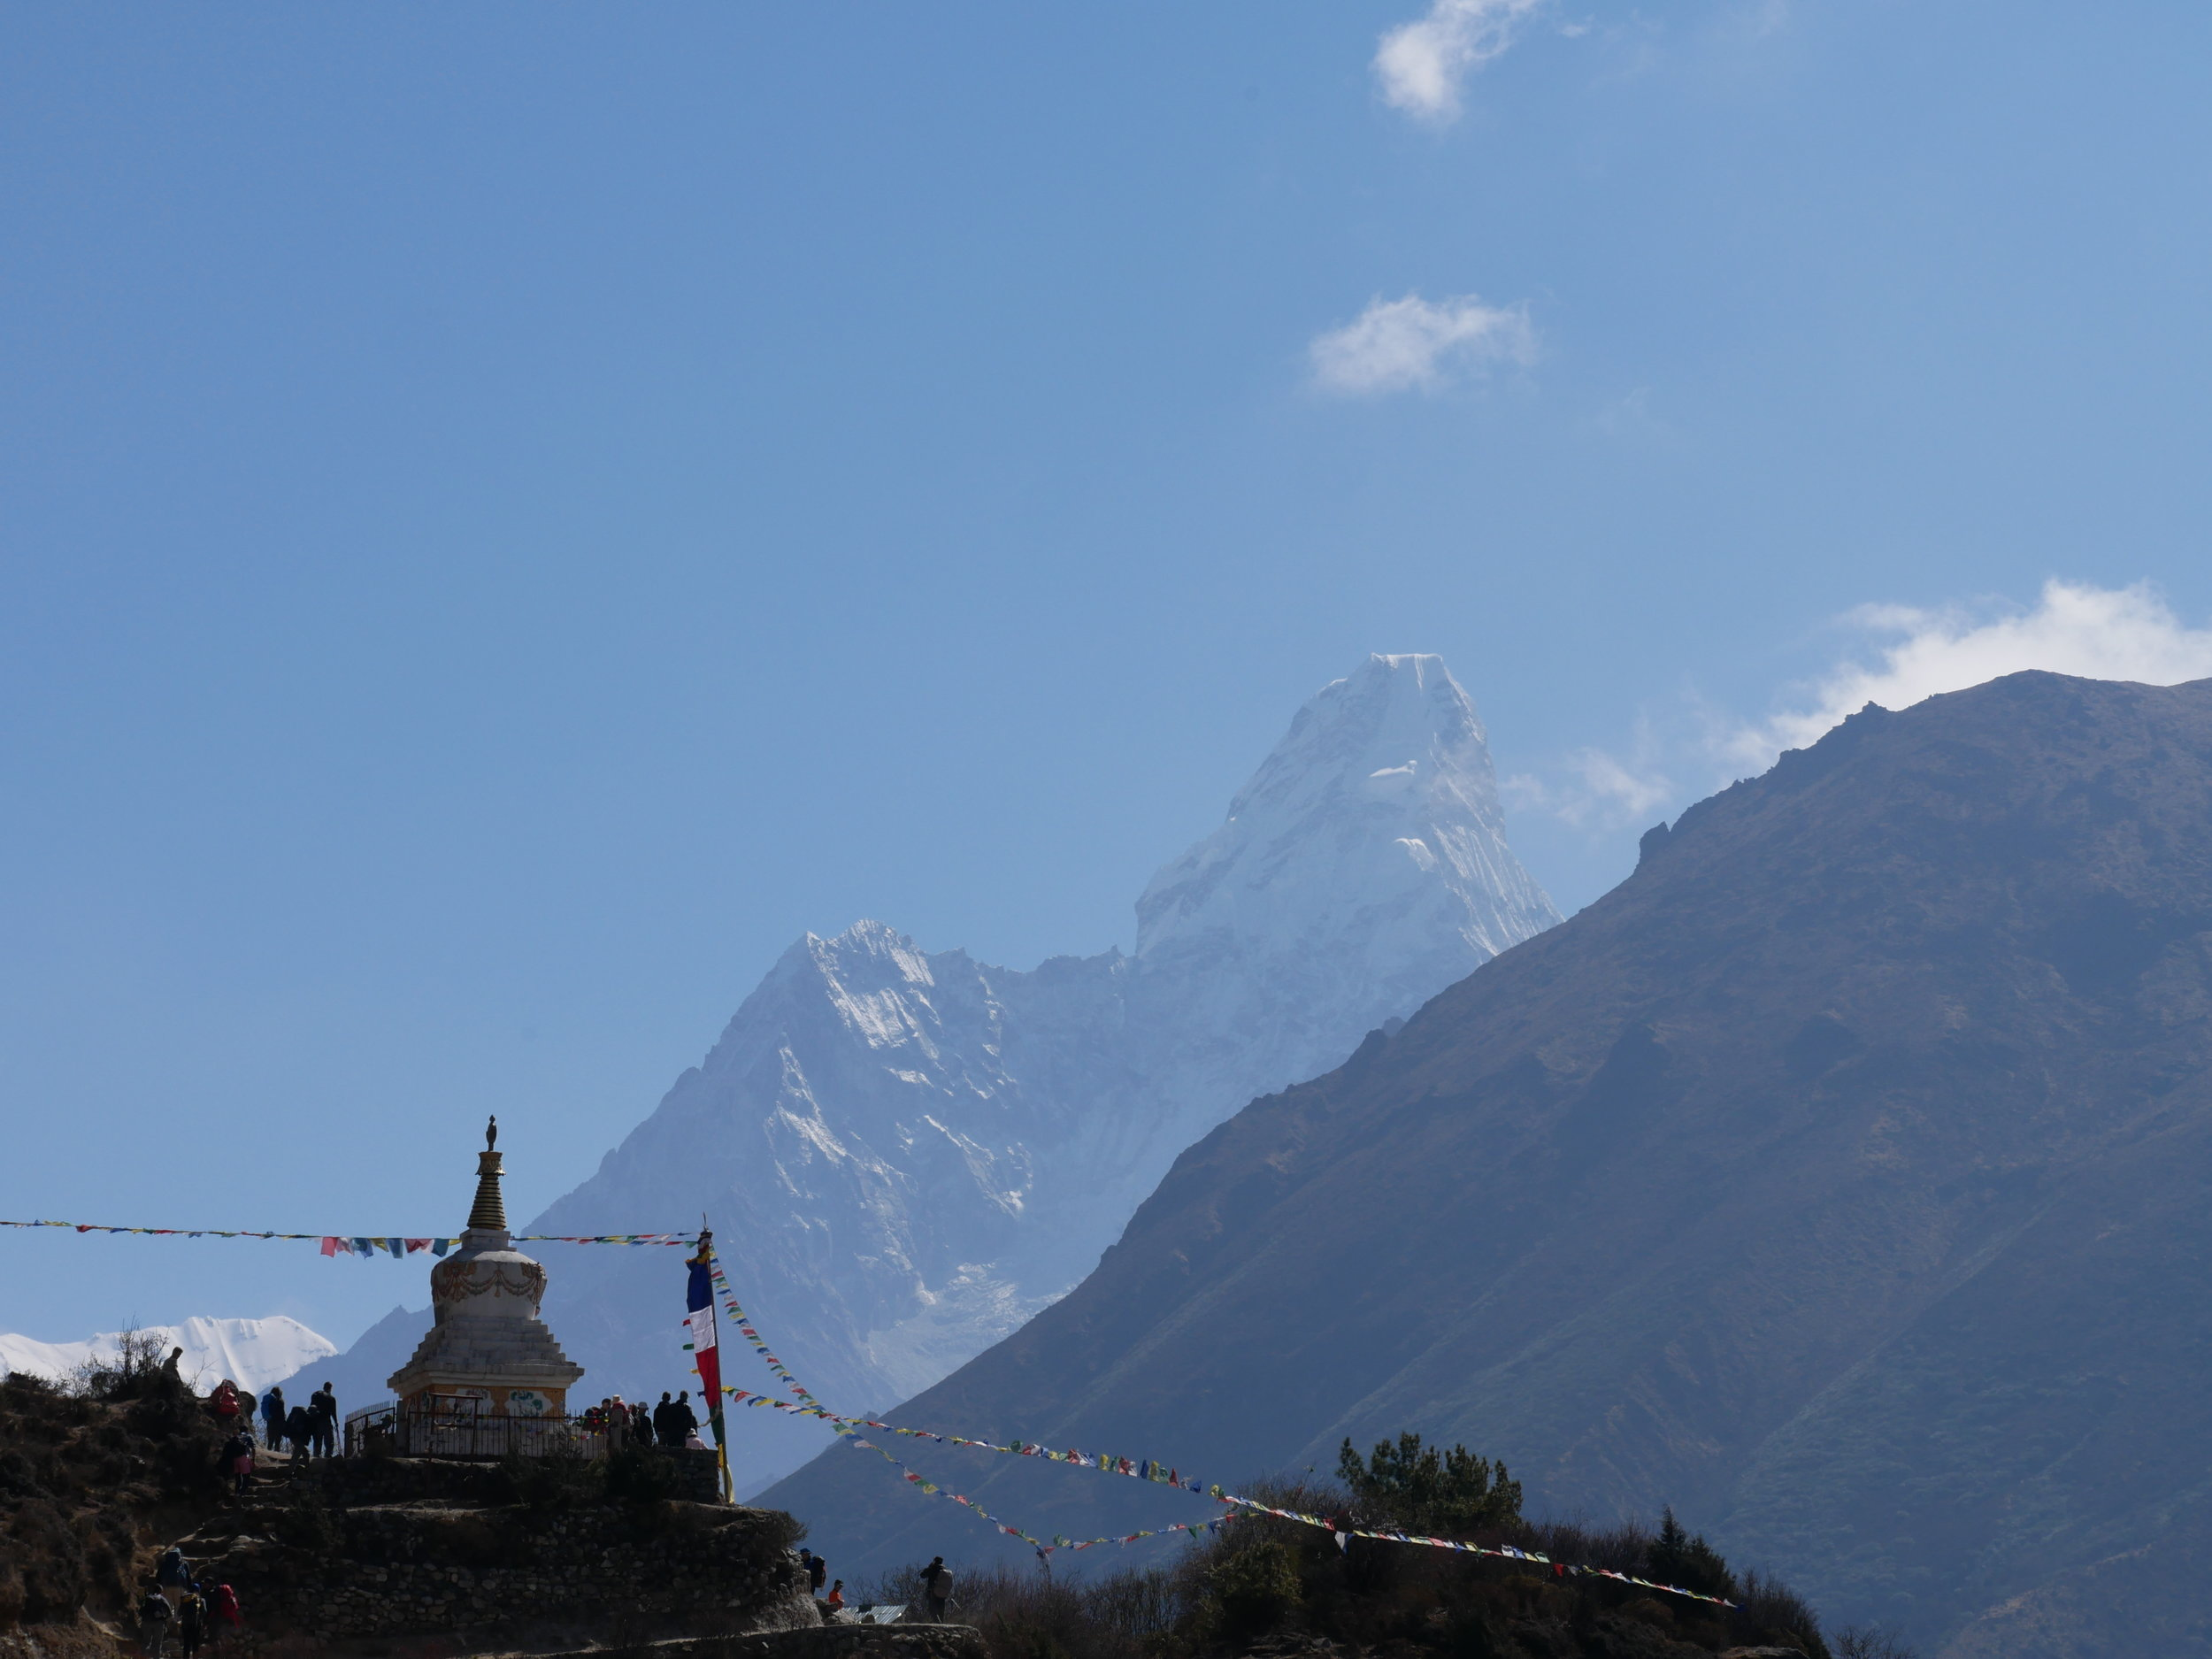 The Tenzing Norgay Memorial Chorten with Ama Dablam in the background